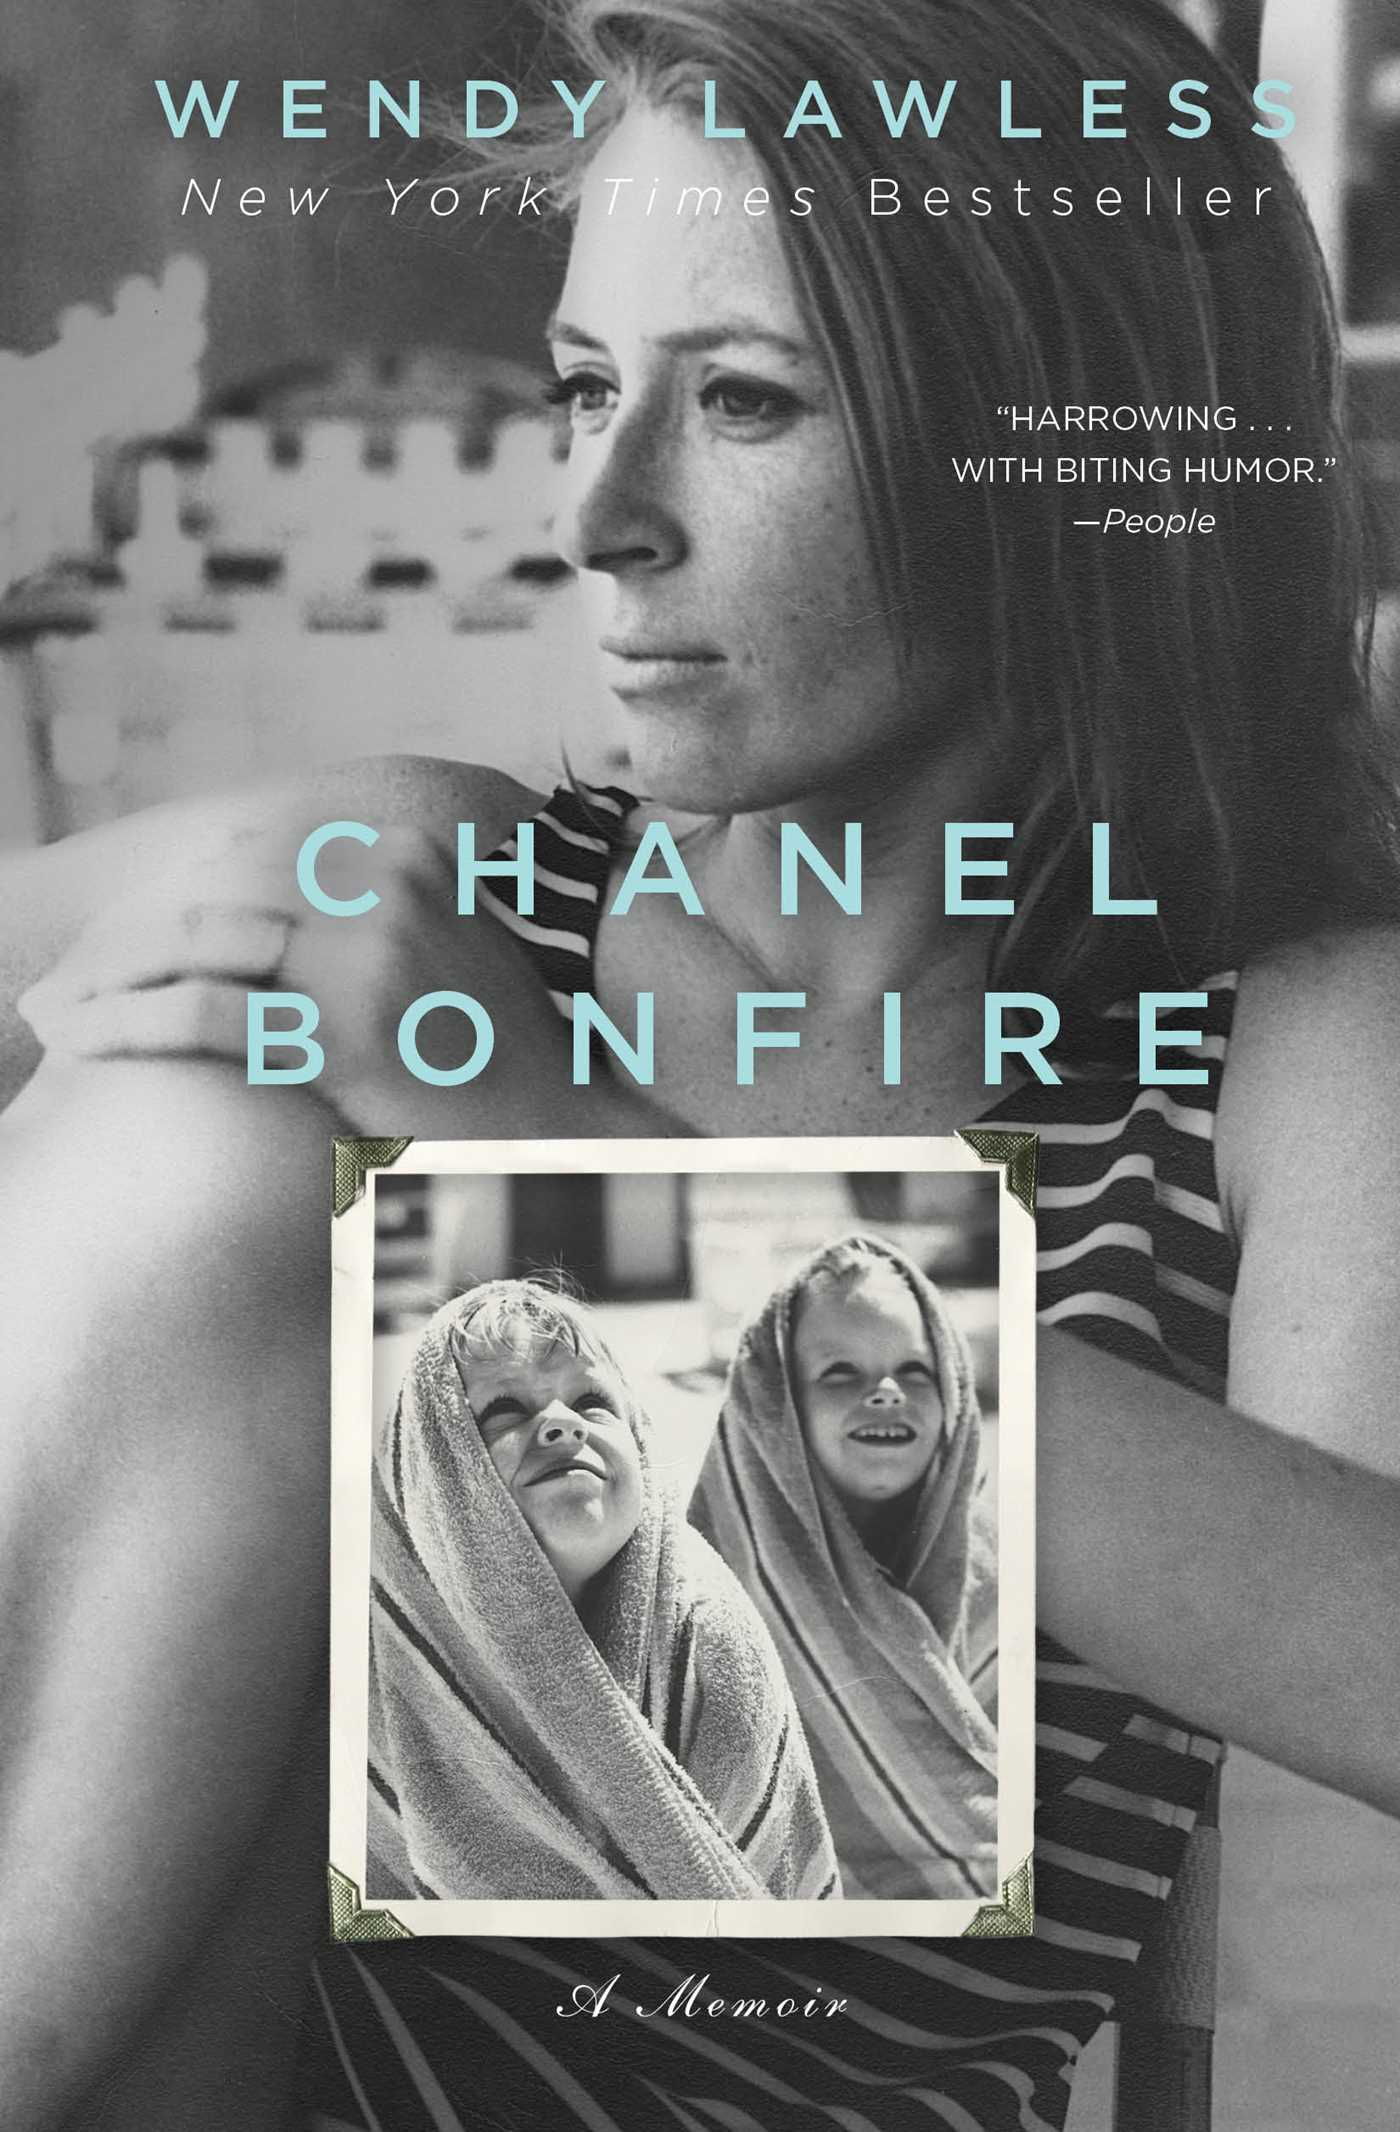 Chanel-bonfire-9781451675382_hr